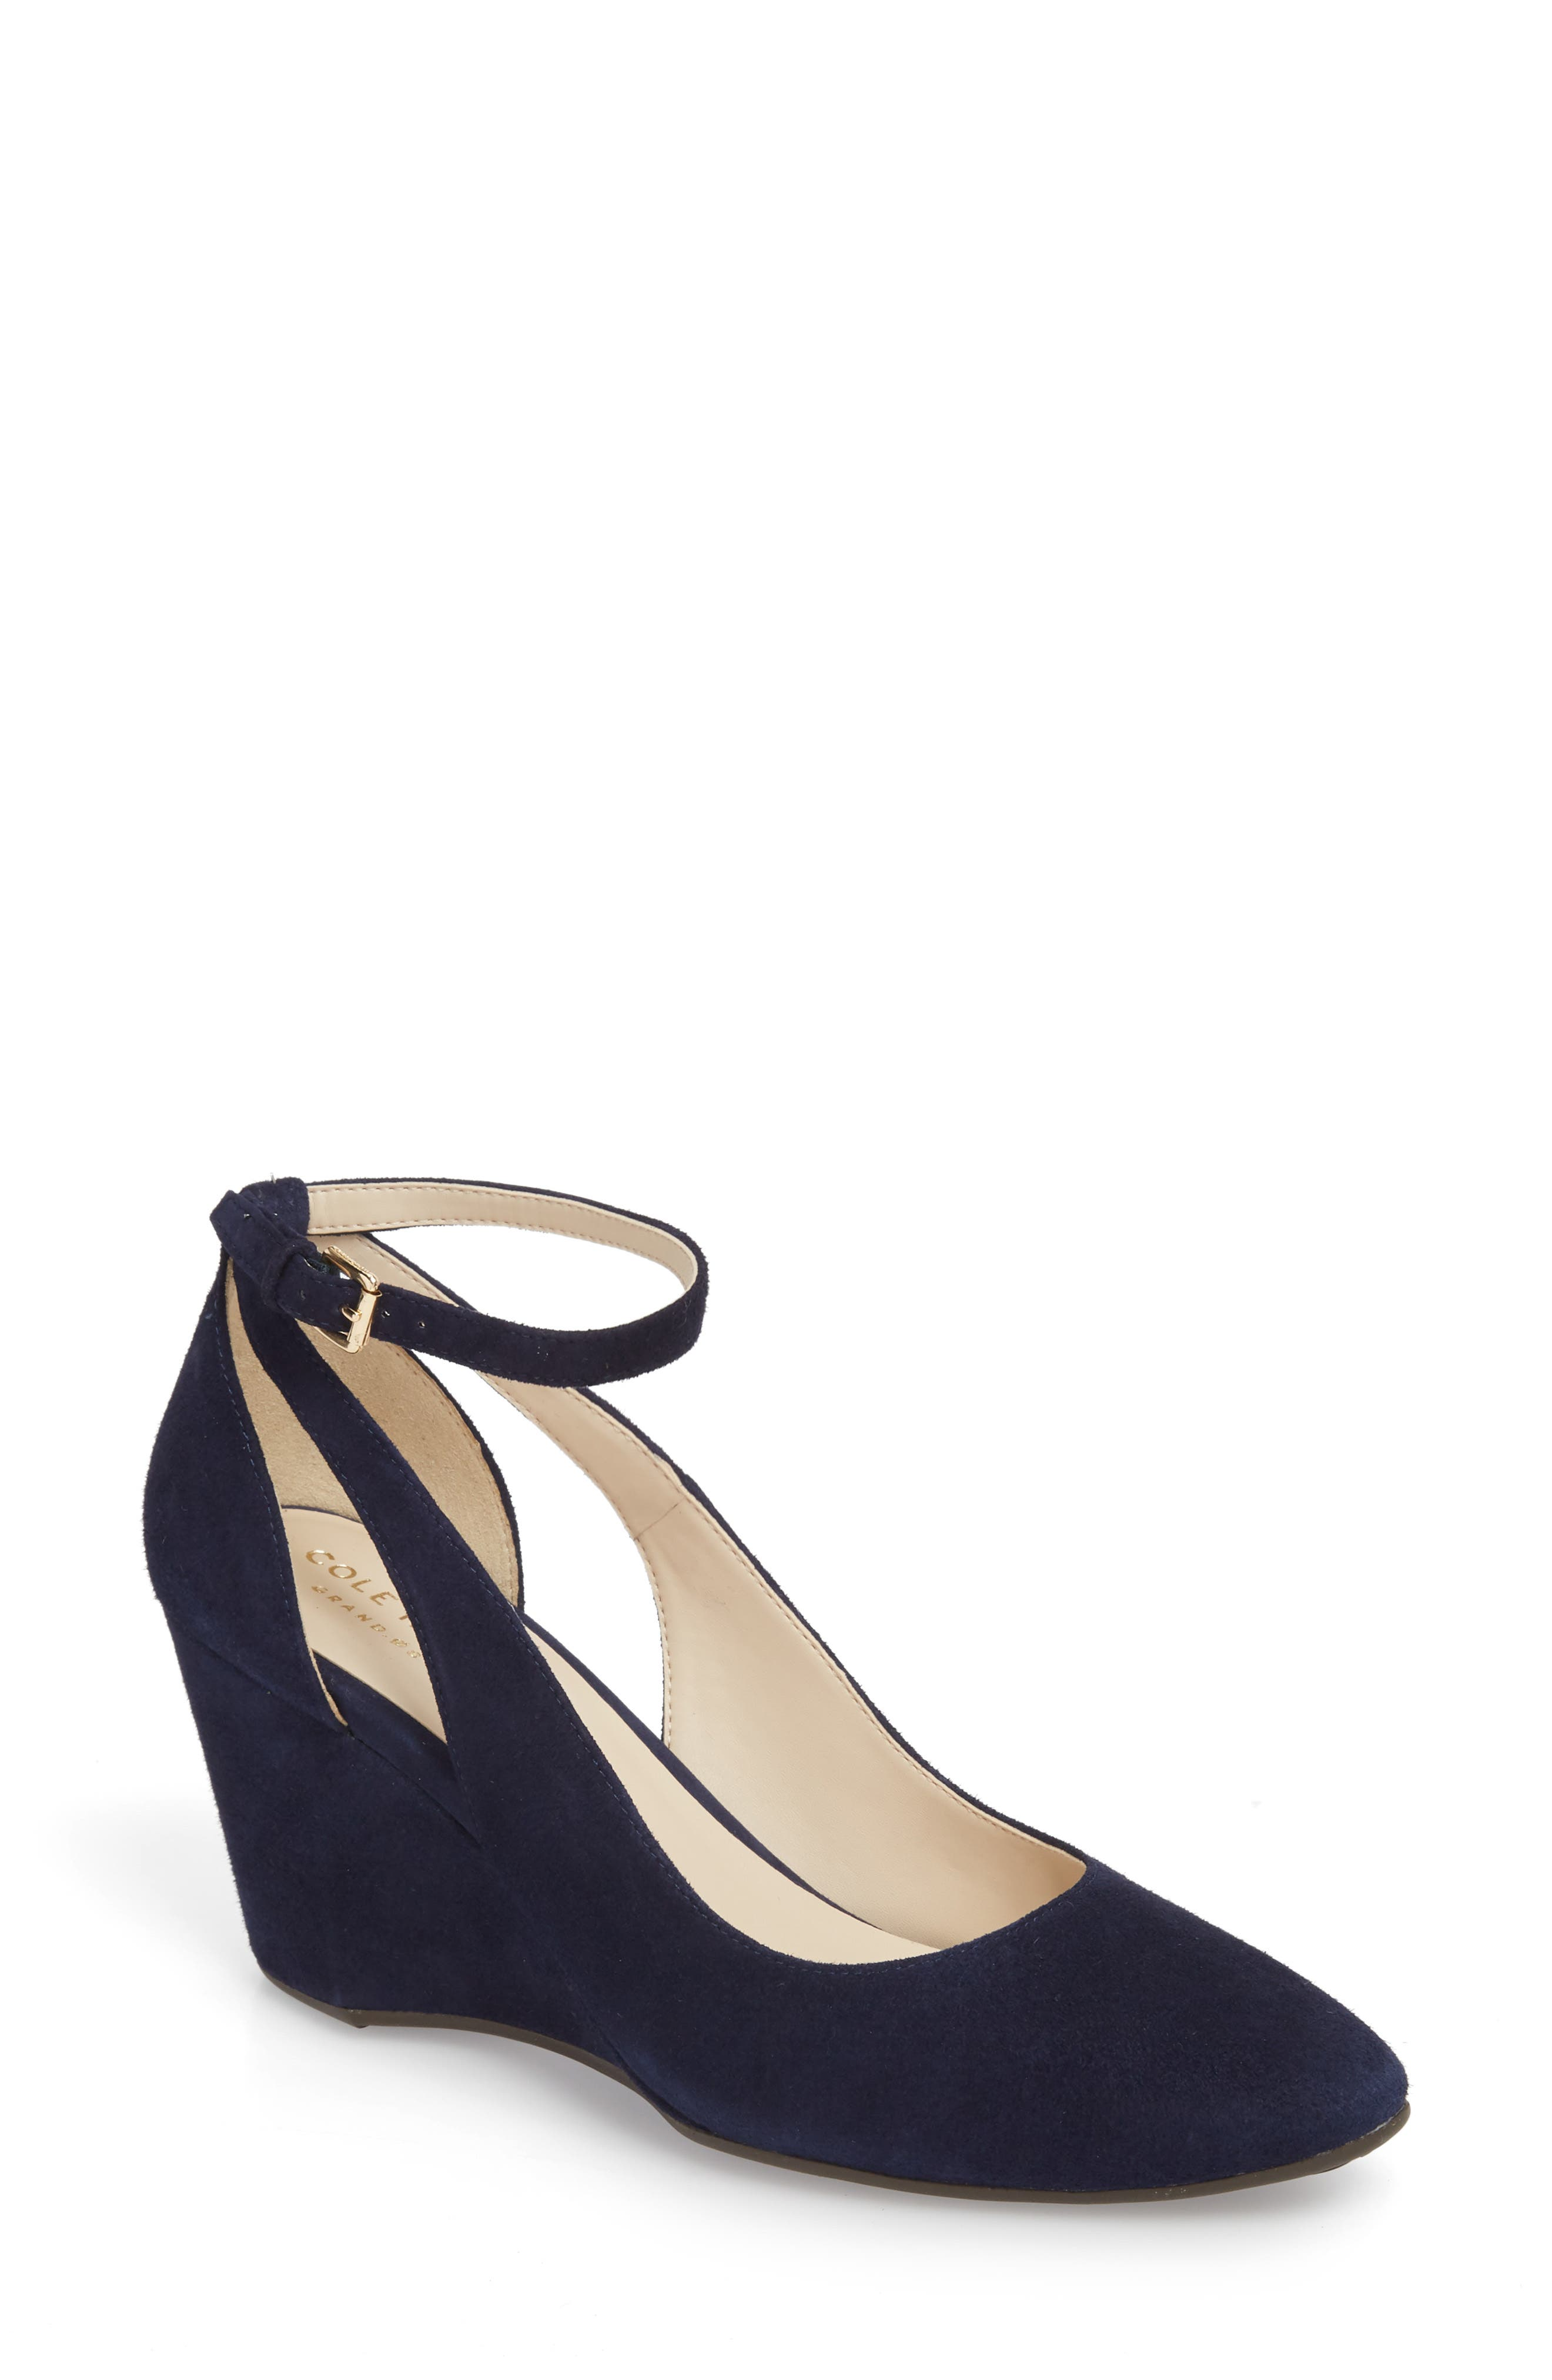 Lacey Cutout Wedge Pump in Marine Blue Suede